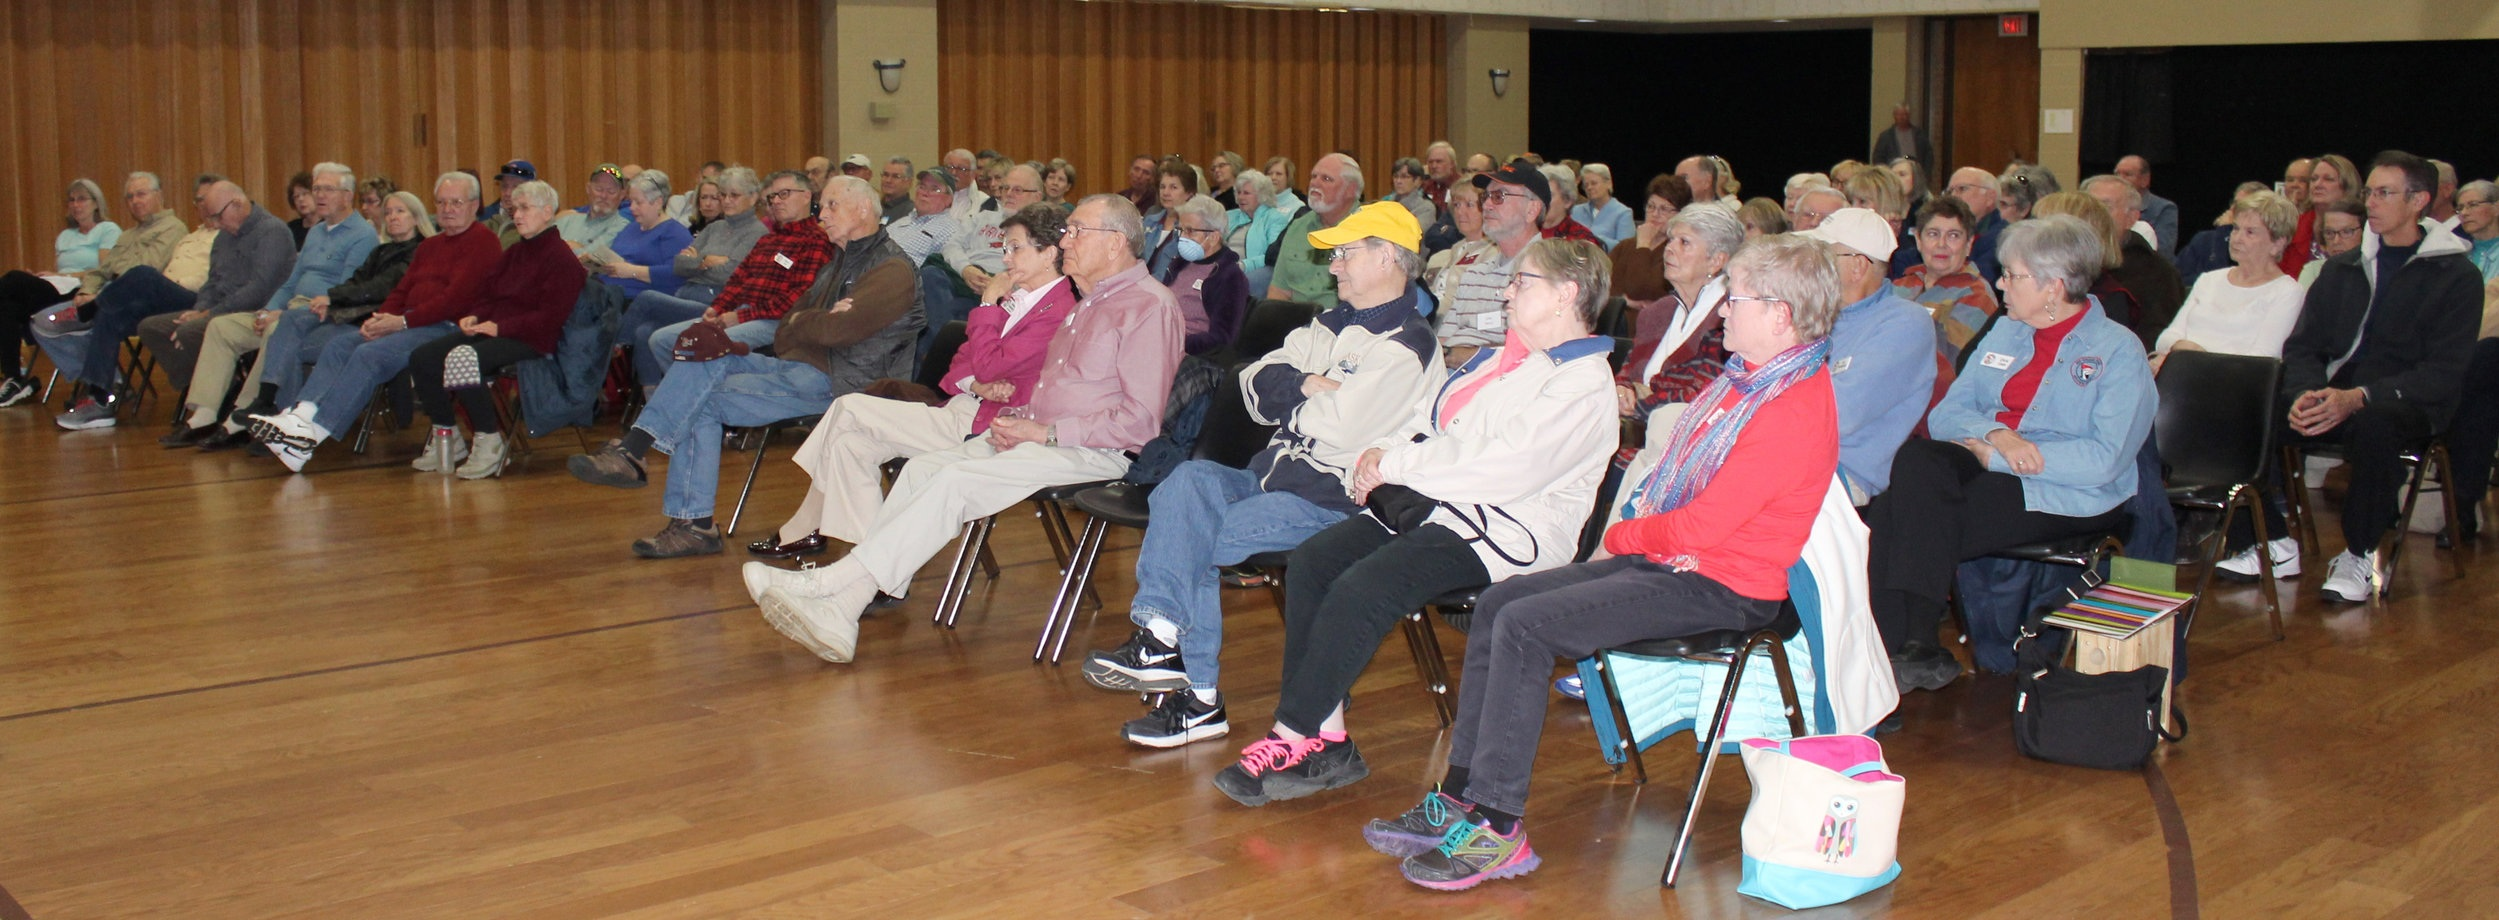 Over 109 members and guests watched & listened. Great turn-out for our first meeting of 2019.